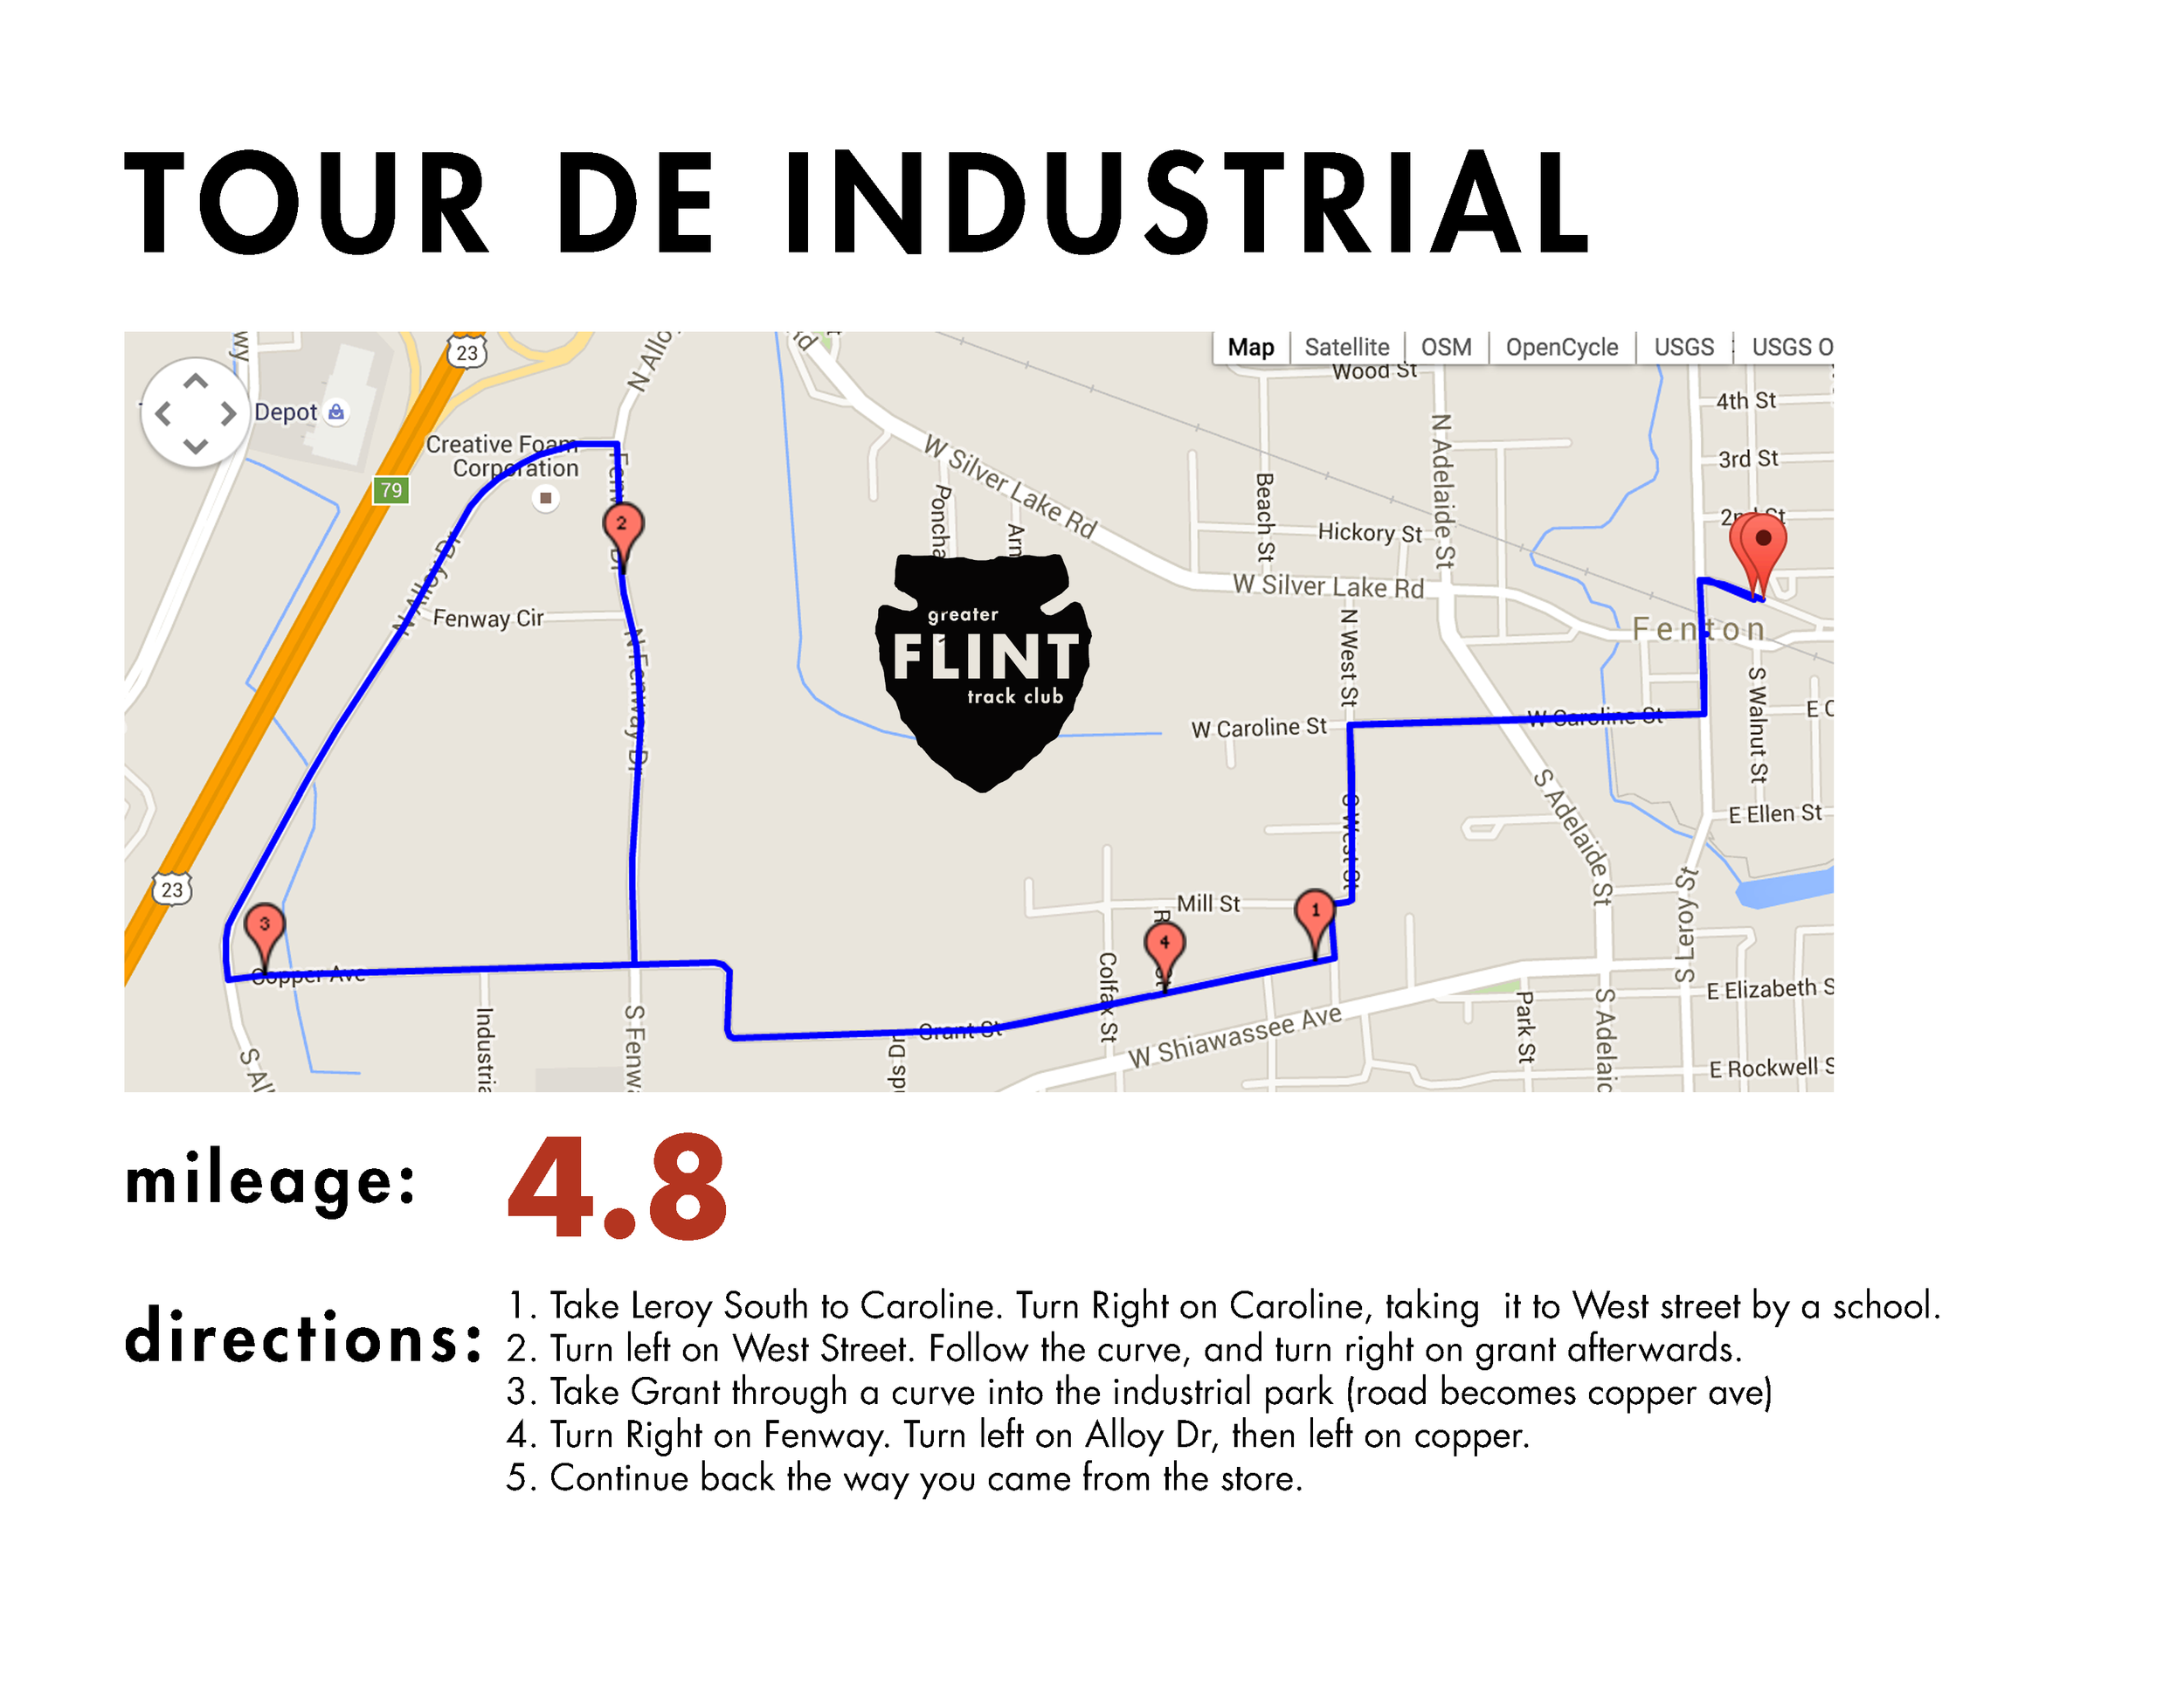 a good option for those that would like to keep things flat, and in town. The industrial section in fenton is a relatively low-traffic area with options to take the run in multiple directions